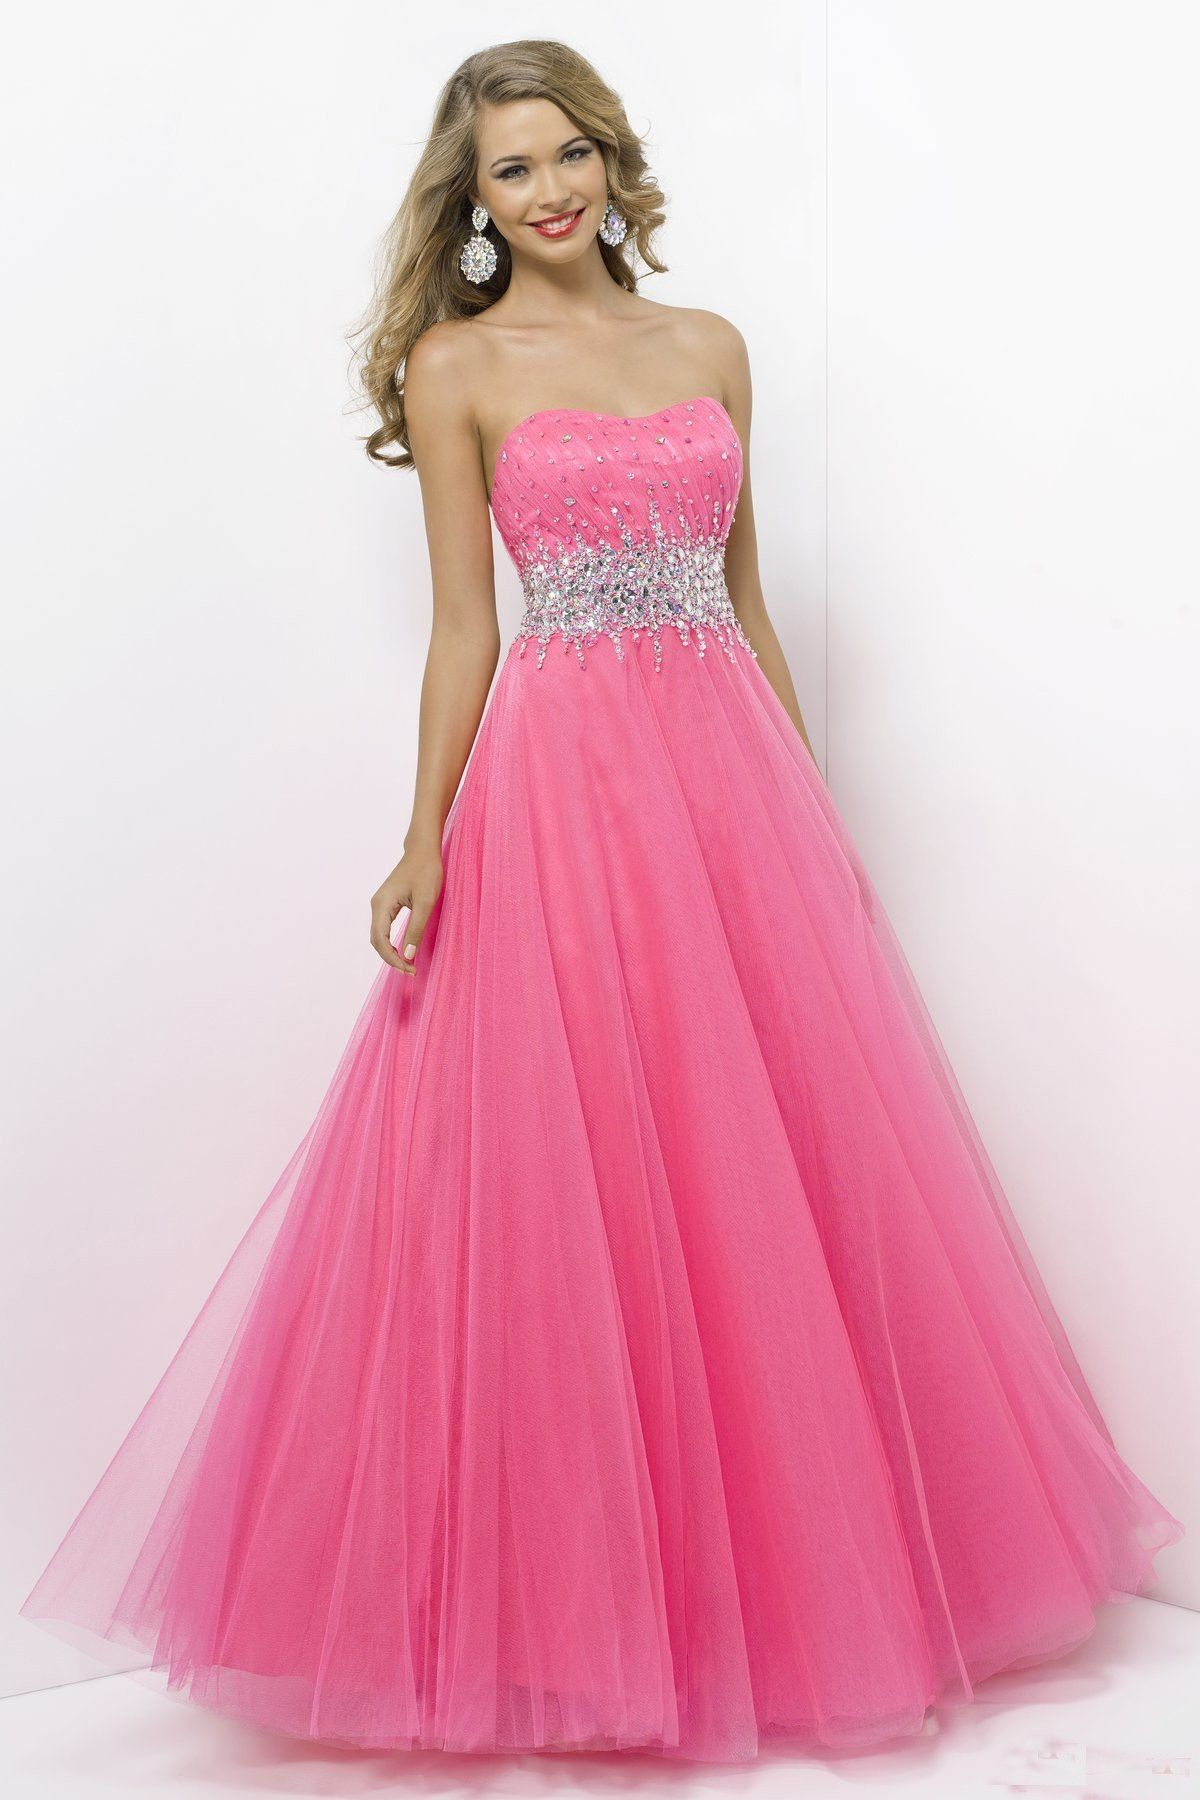 prom dresses prom dresses for teens prom dresses long 2014 strapless ...